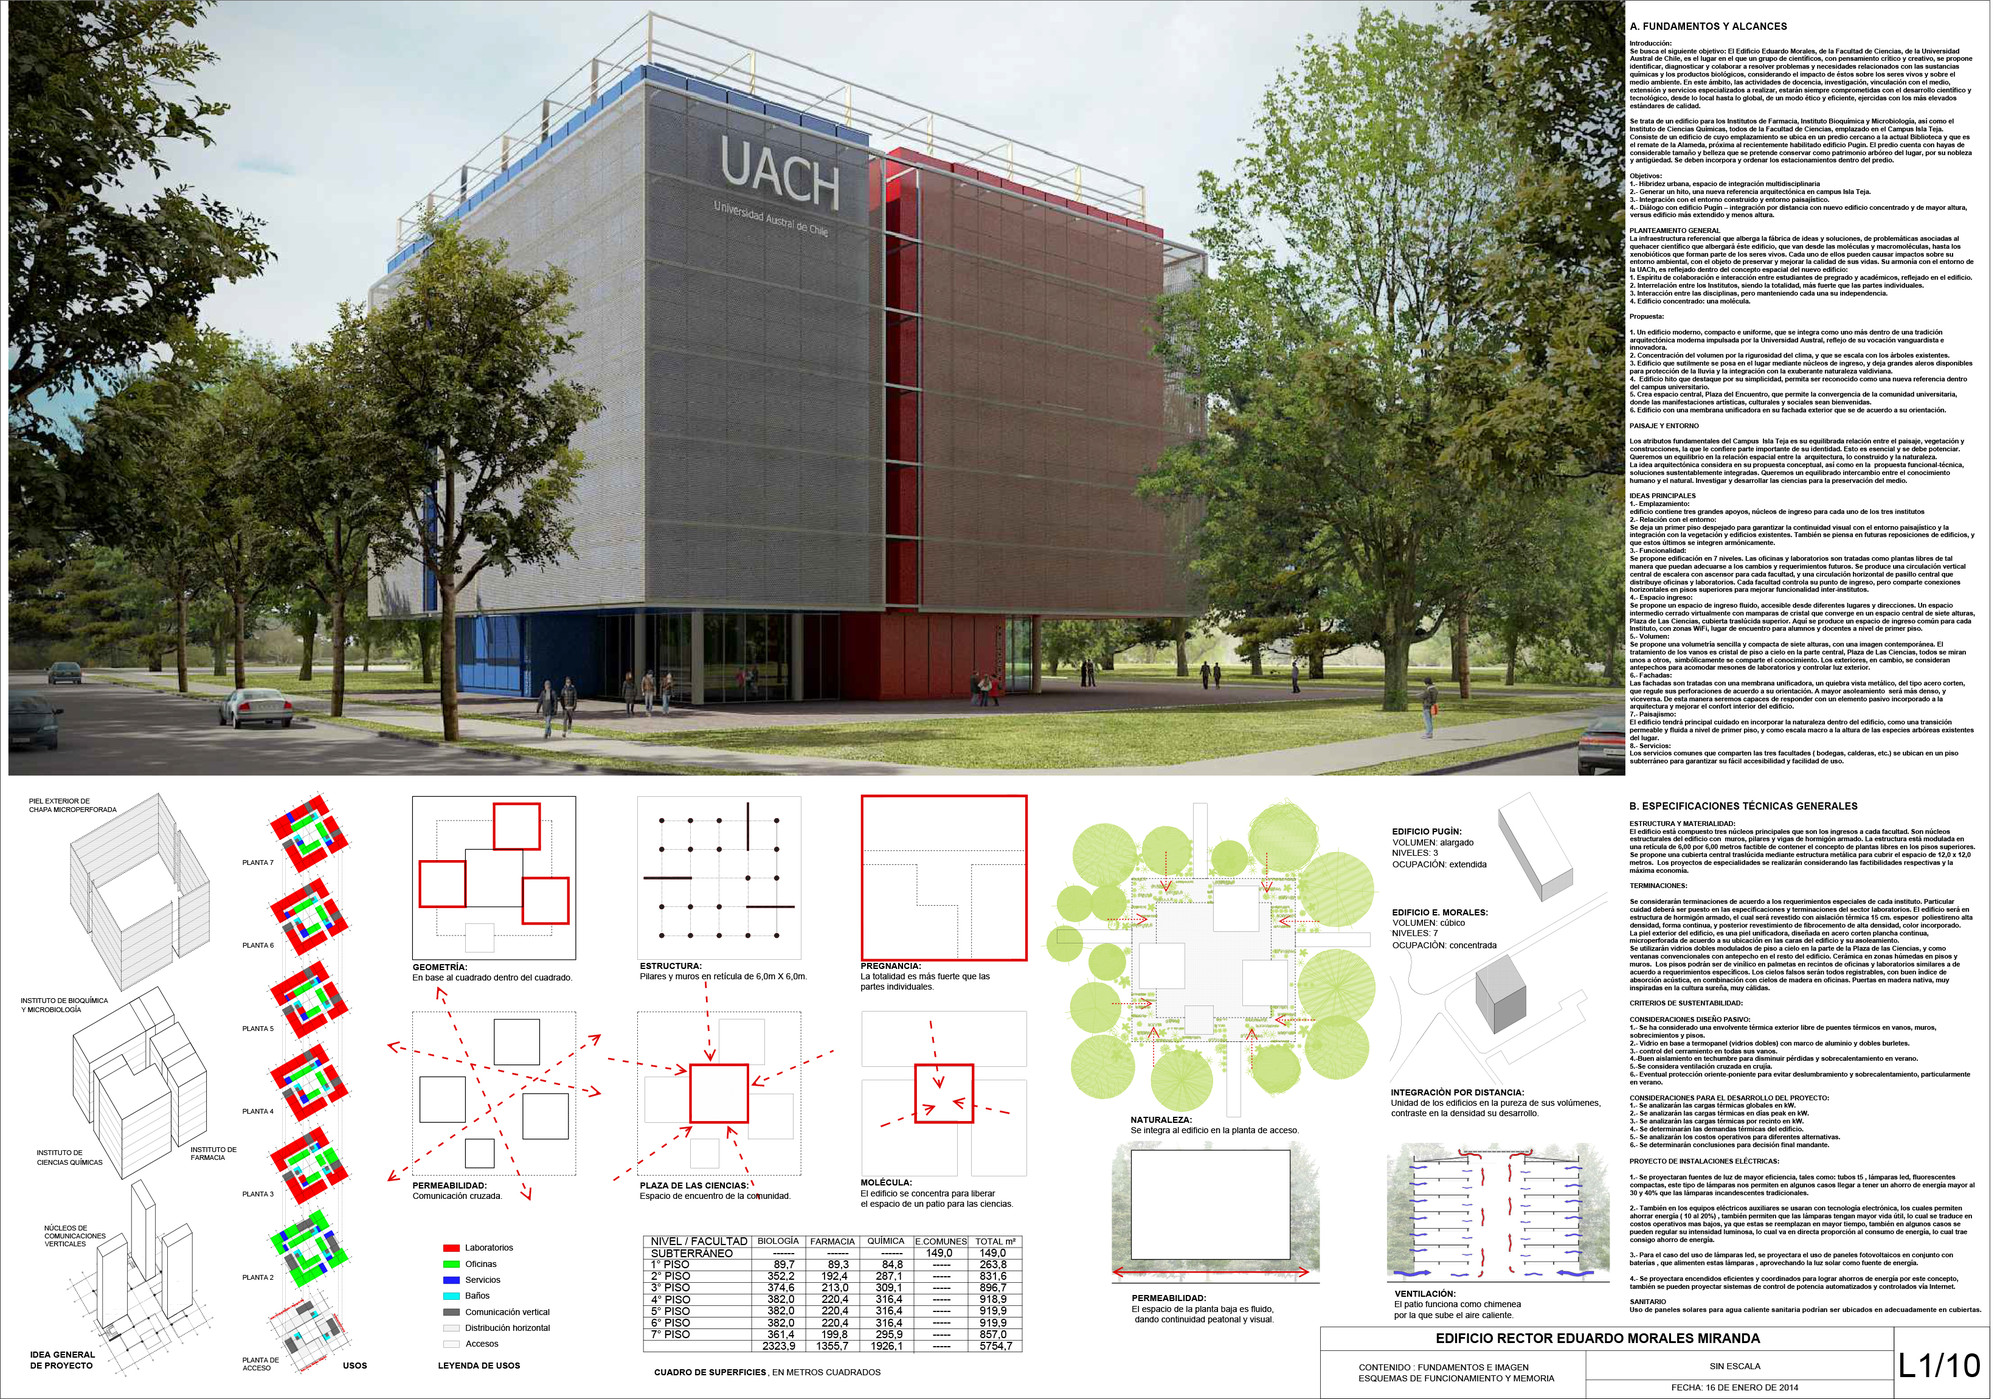 L1 Tercer Lugar Crisosto Smith Arquitectos. Image Courtesy of UACH